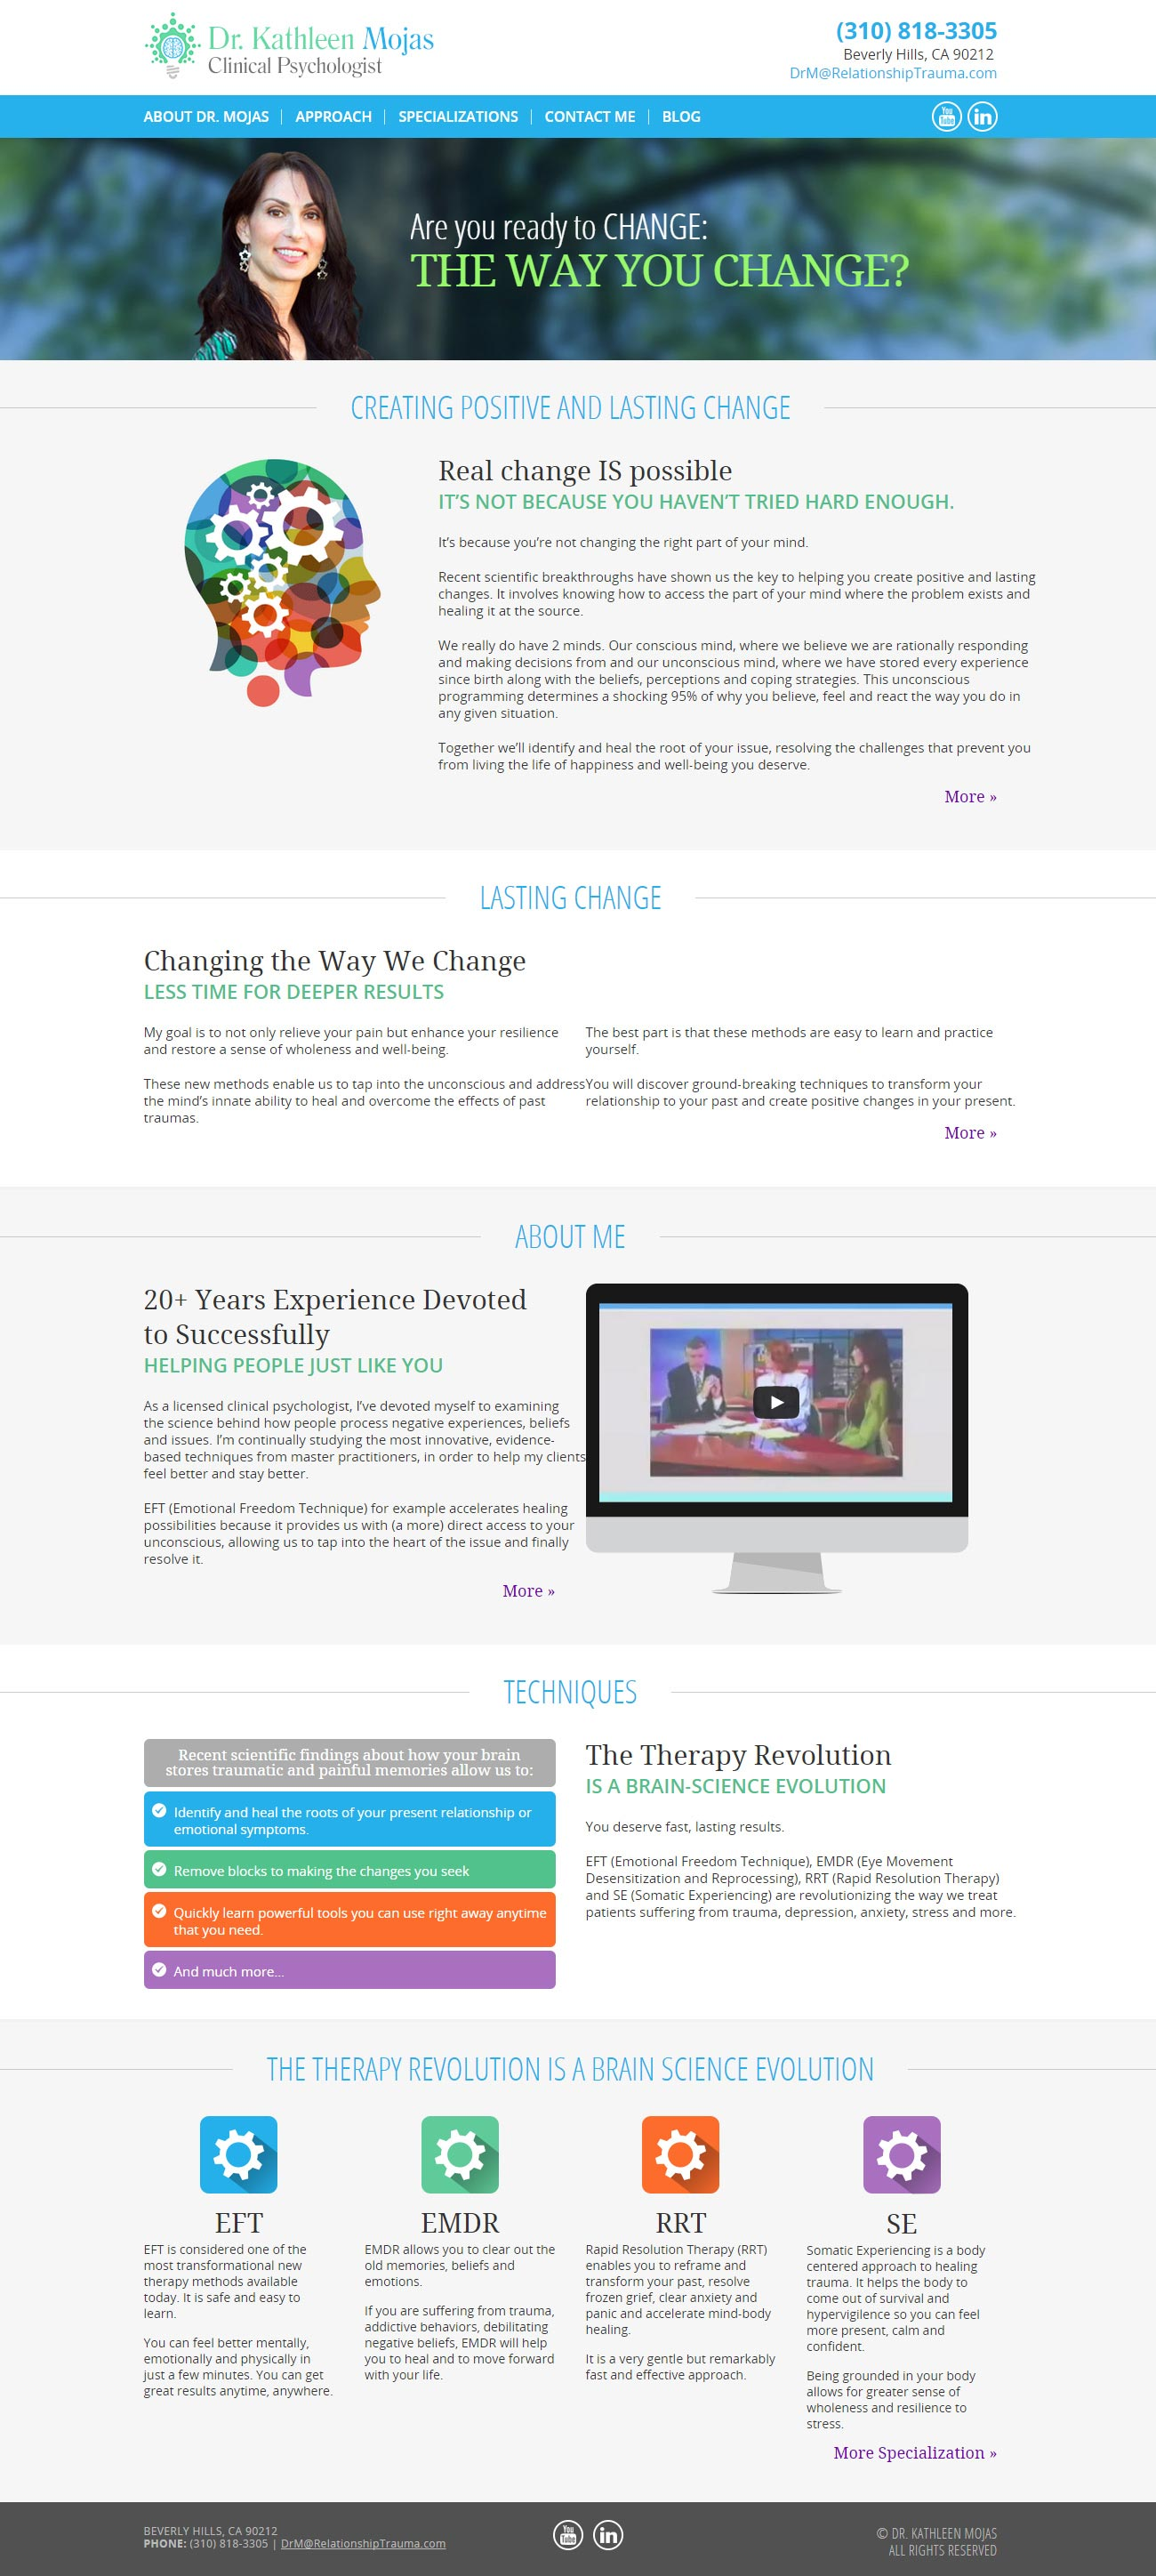 Branded Design & Development of a Responsive Website in WordPress